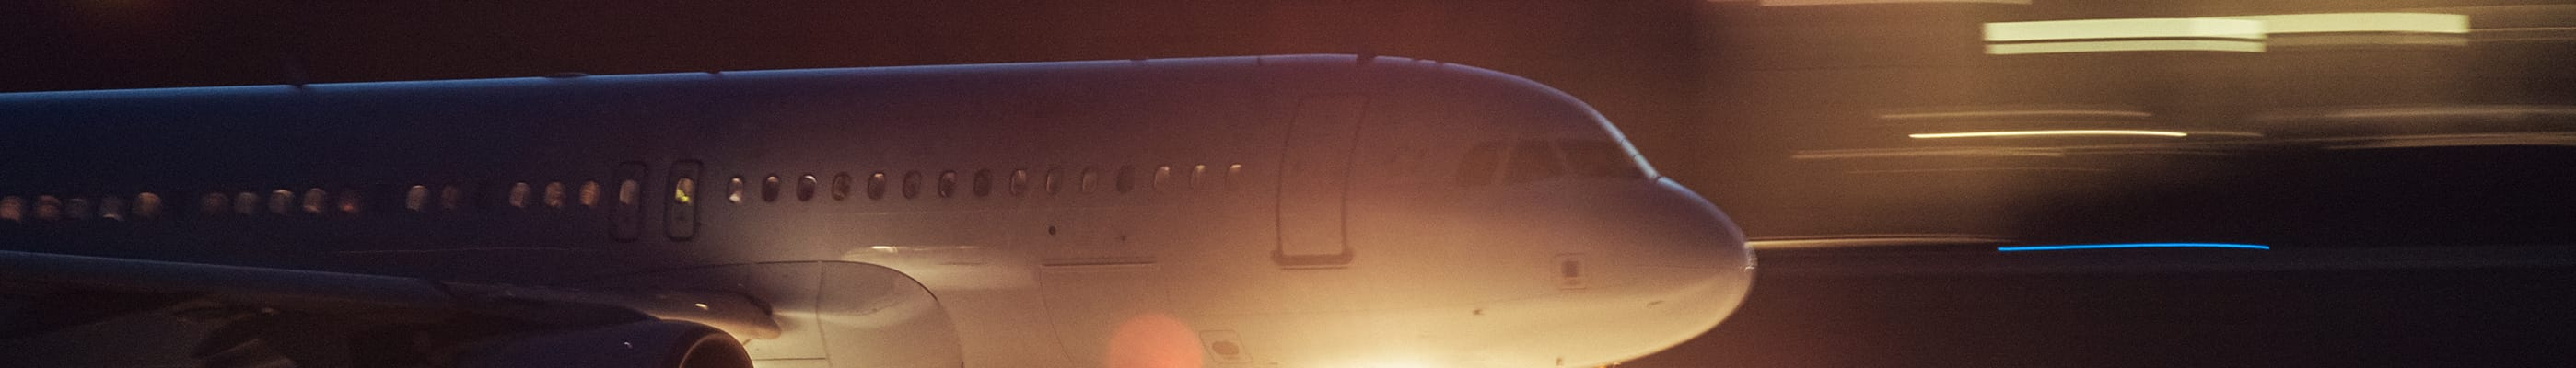 Image of passenger jet moving from left to right, with lights zooming past.